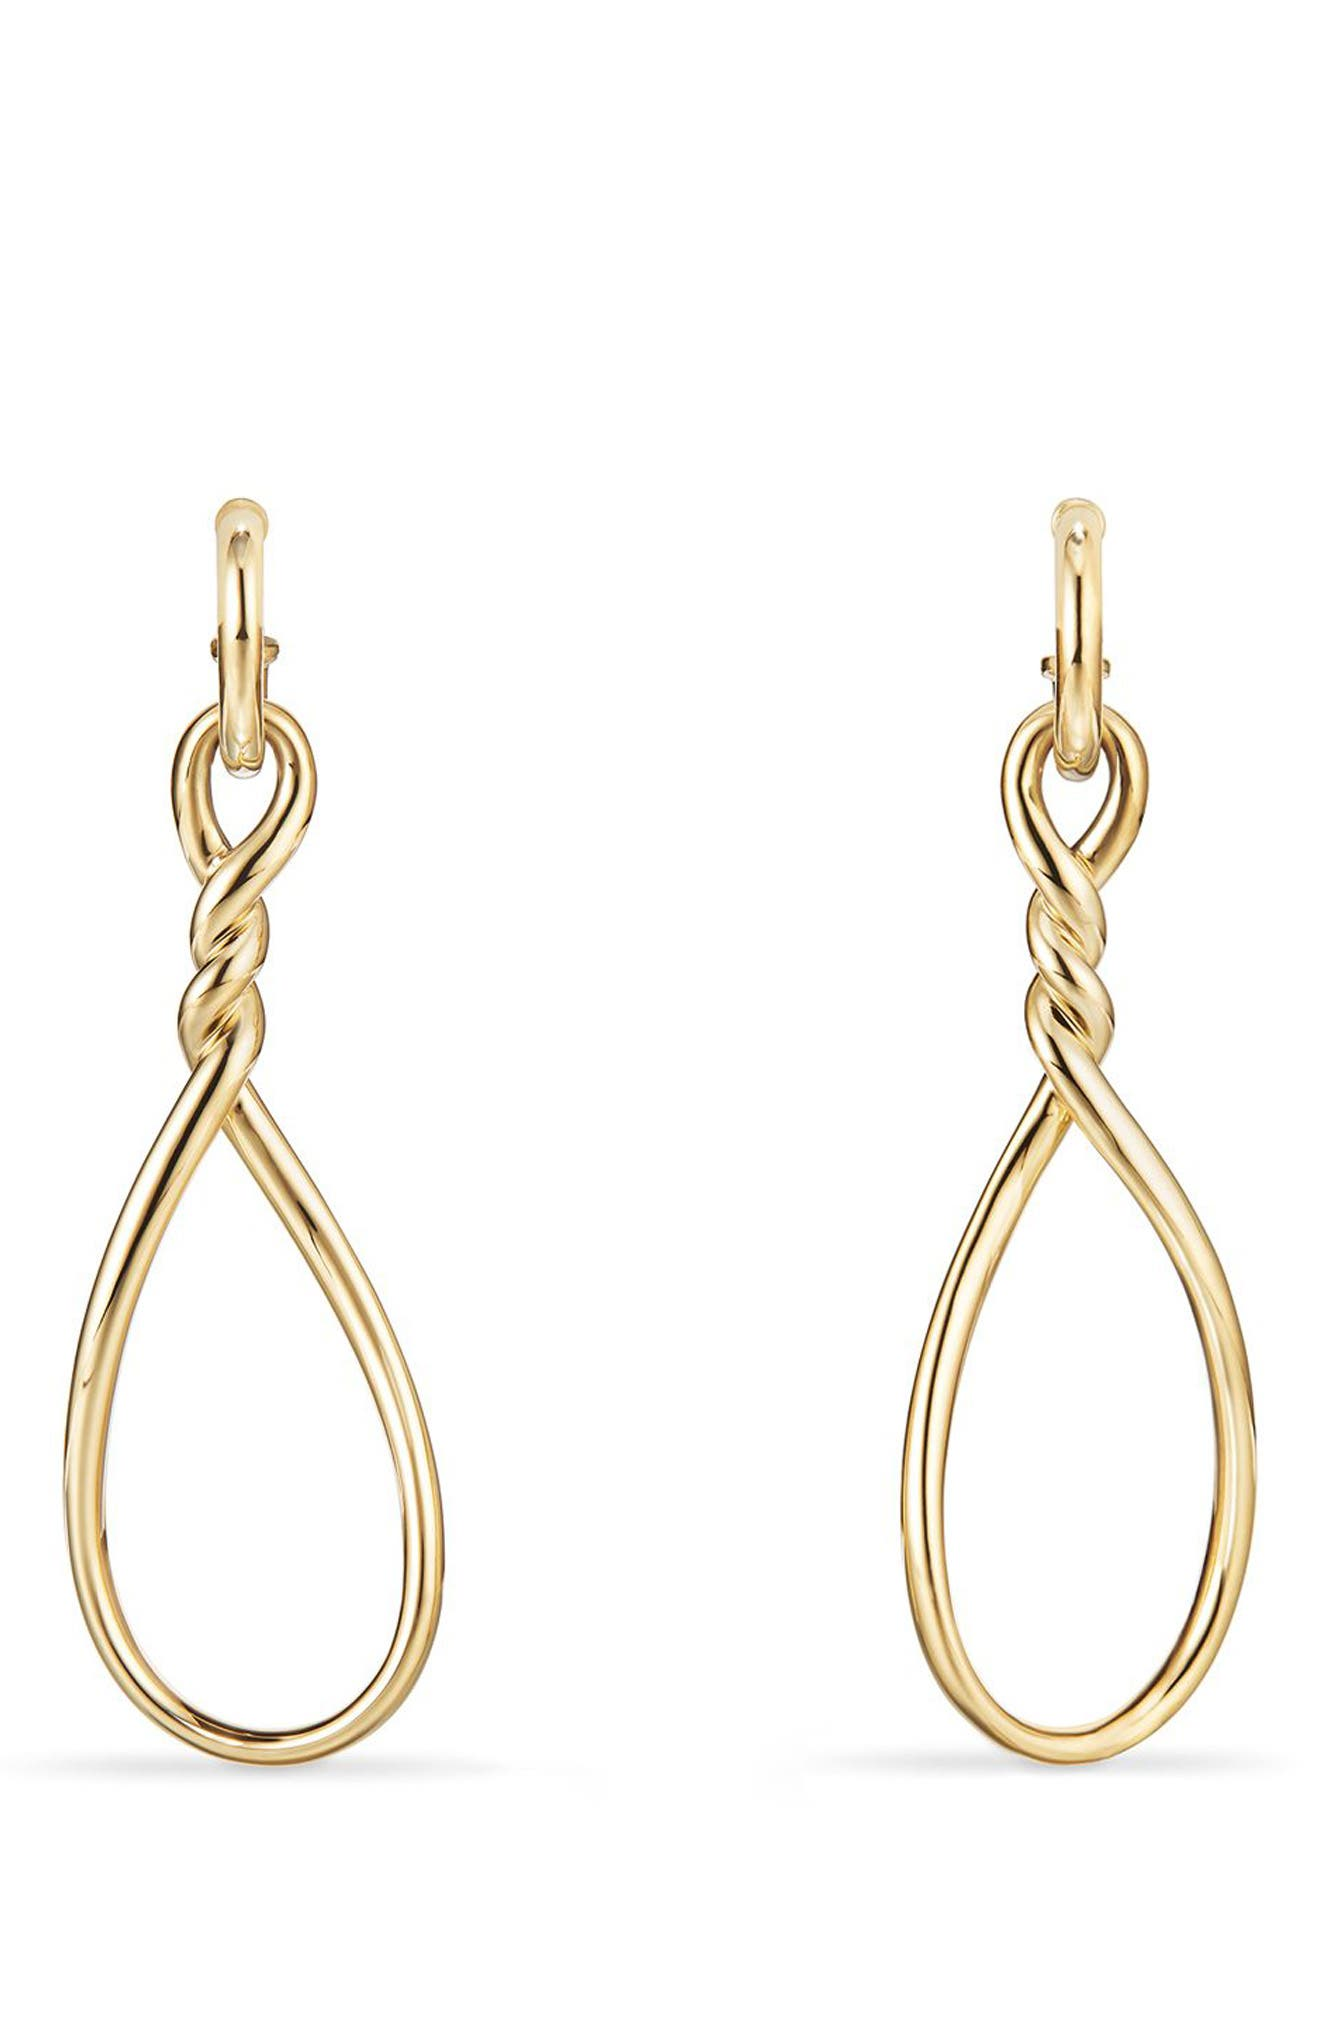 DAVID YURMAN Continuance Drop Earrings